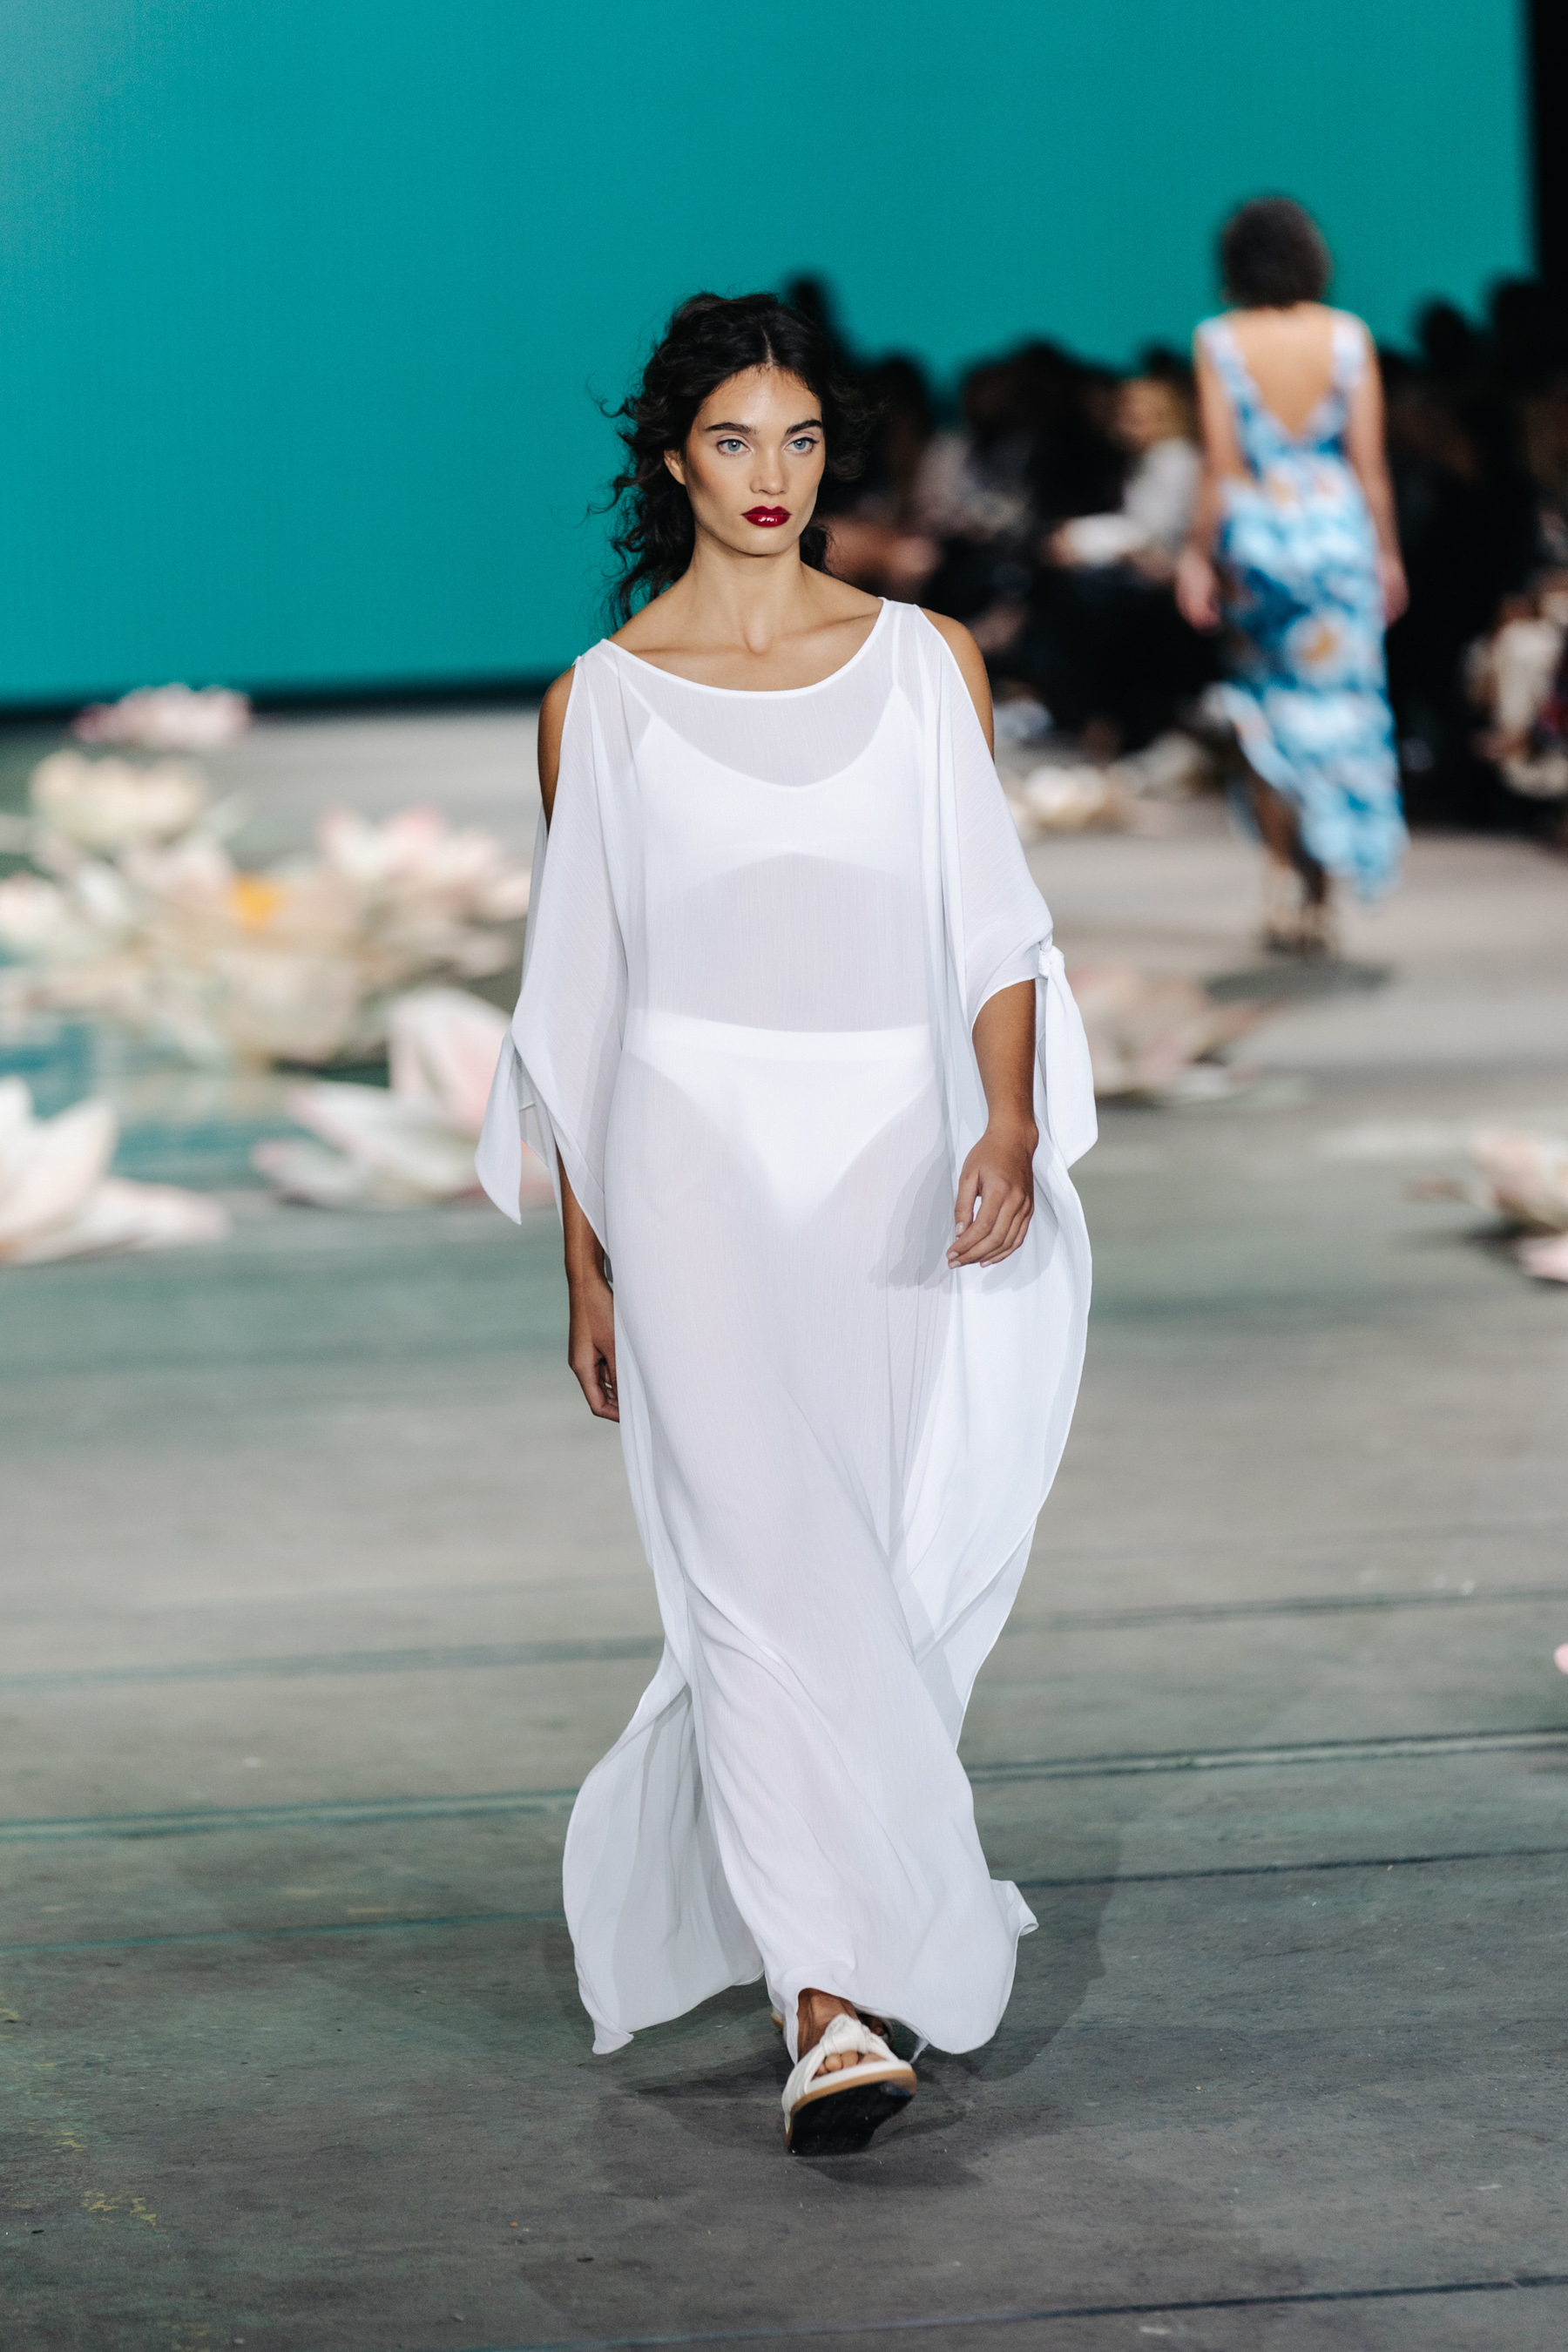 Indigenous Fashion Projects Spring 2022 Fashion Show